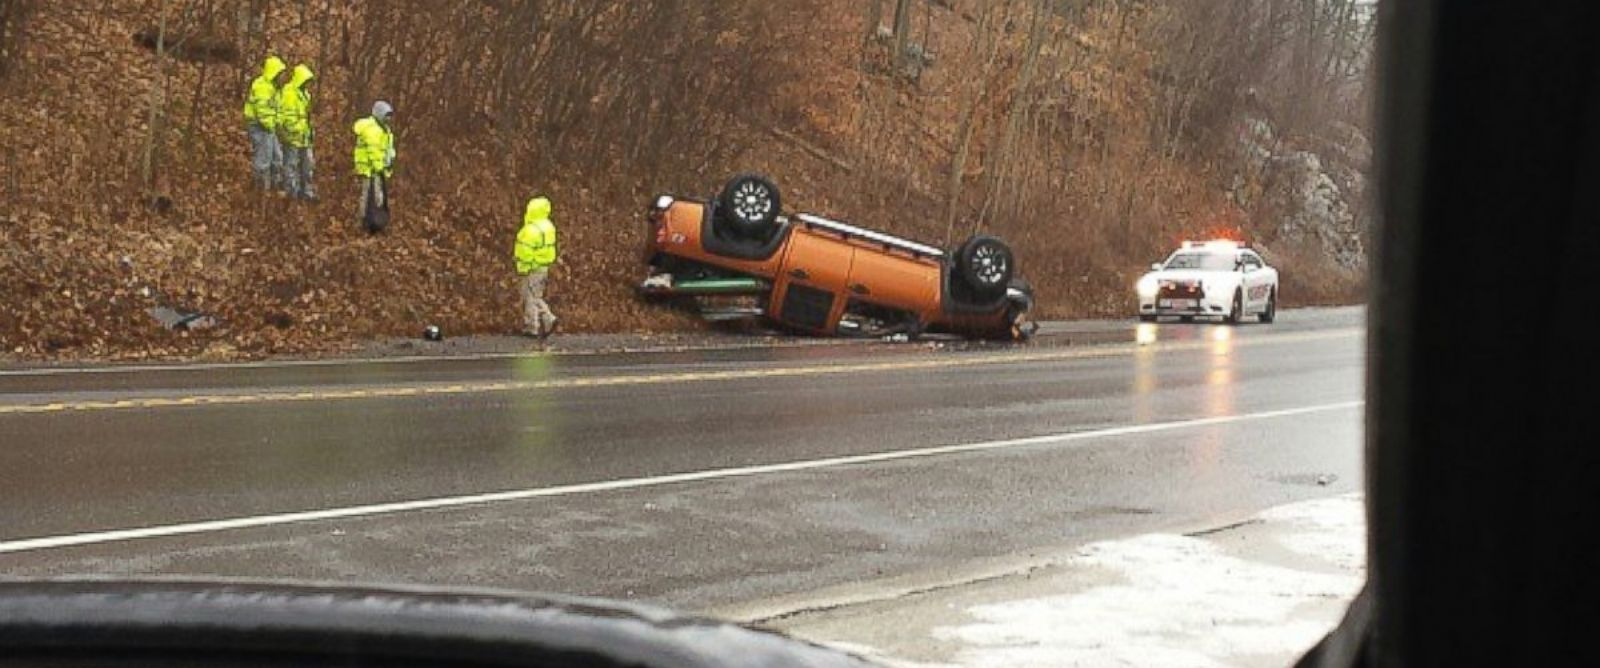 PHOTO: An overturned car on Rt 9 between Peekskill and Cold Spring, NY, Jan. 18, 2015.